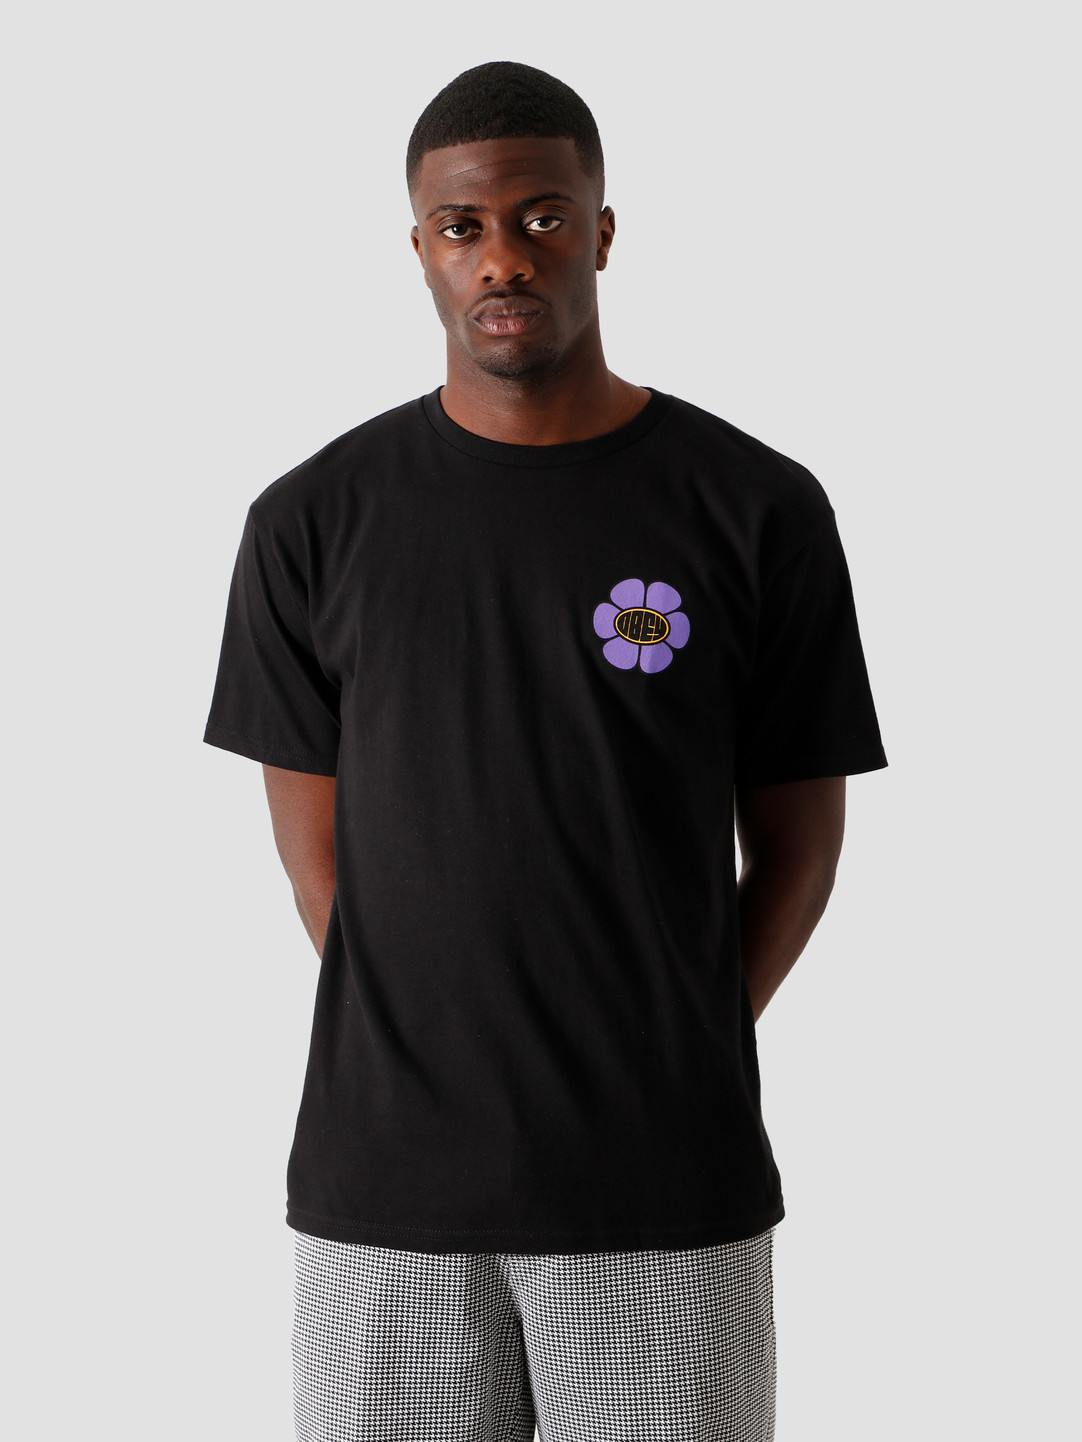 Obey Obey Daisy Ave. T-Shirt Black 163082322 BLK